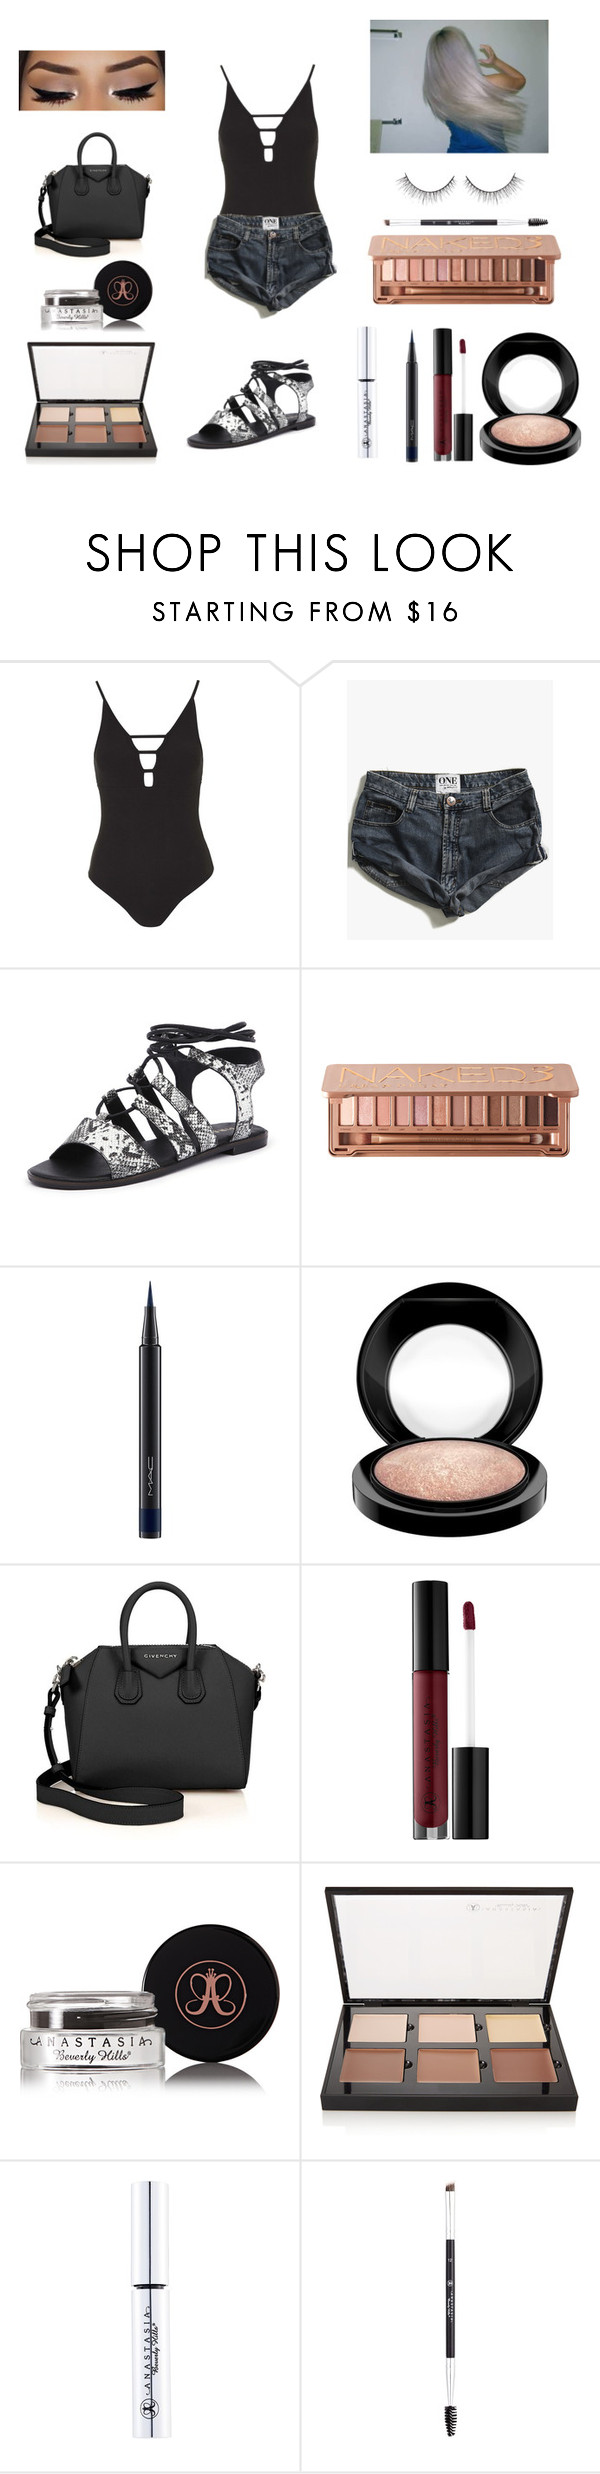 """Untitled #169"" by allgoodbabybaby on Polyvore featuring Topshop, One Teaspoon, Siren, Urban Decay, MAC Cosmetics, Givenchy and Anastasia Beverly Hills"